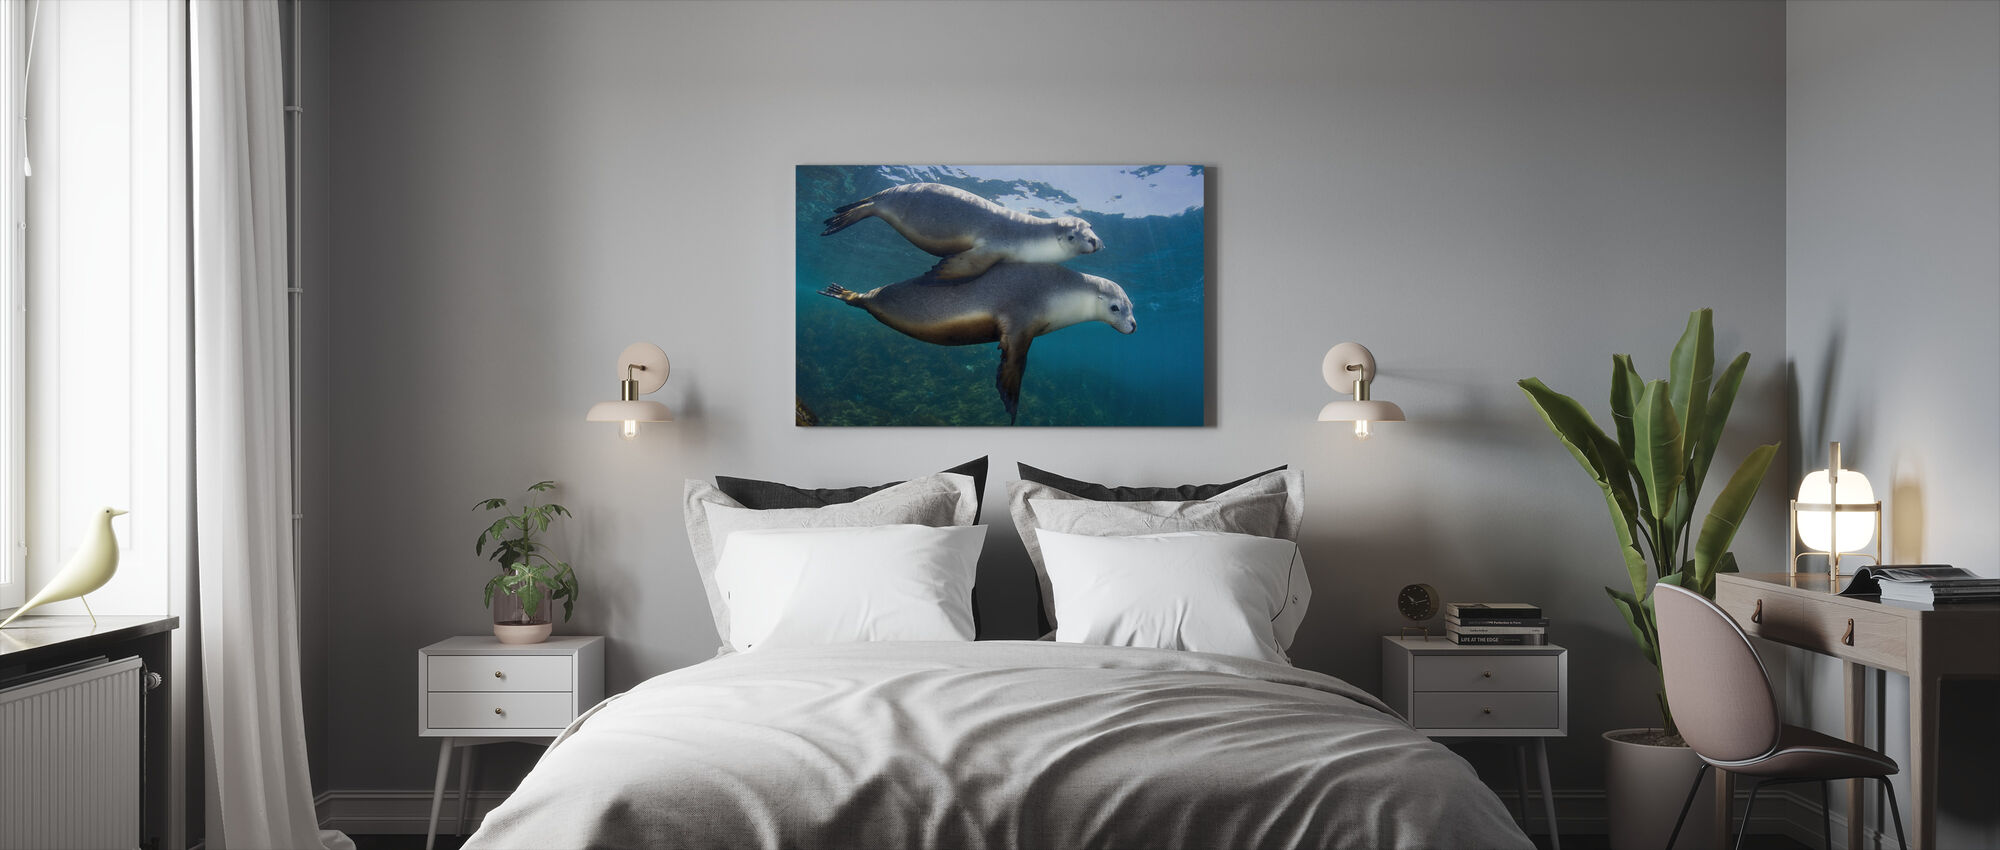 Pair of Sea Lions - Canvas print - Bedroom